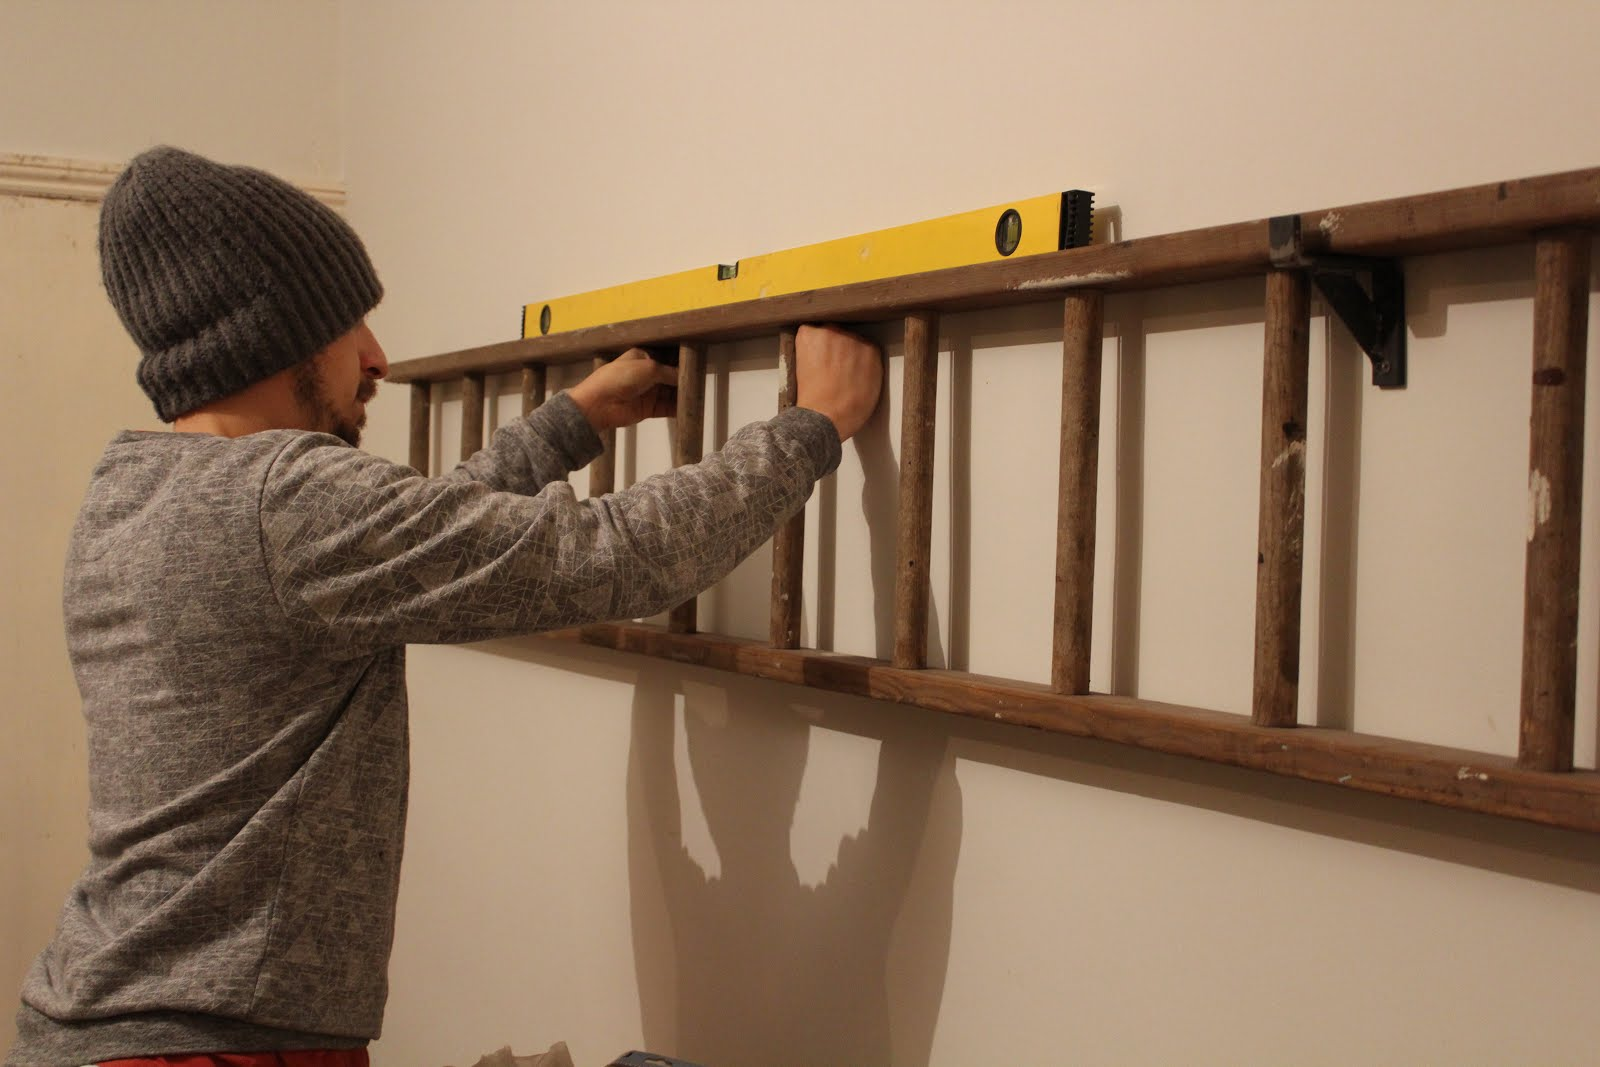 How to hang a ladder on a wall